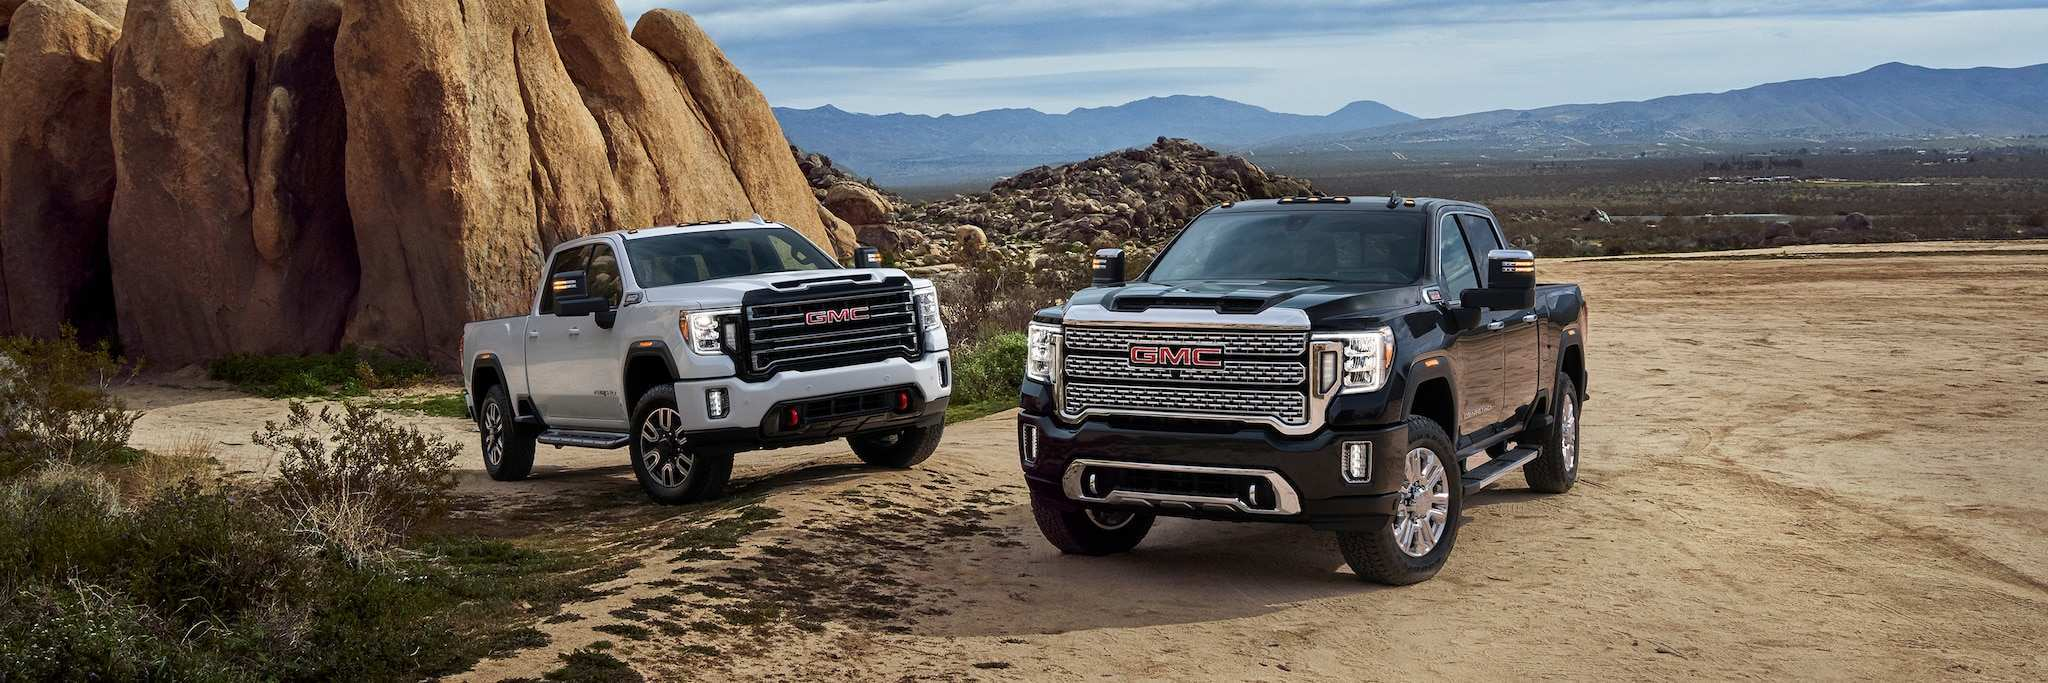 56 The Best 2020 Gmc Sierra Hd Denali Redesign